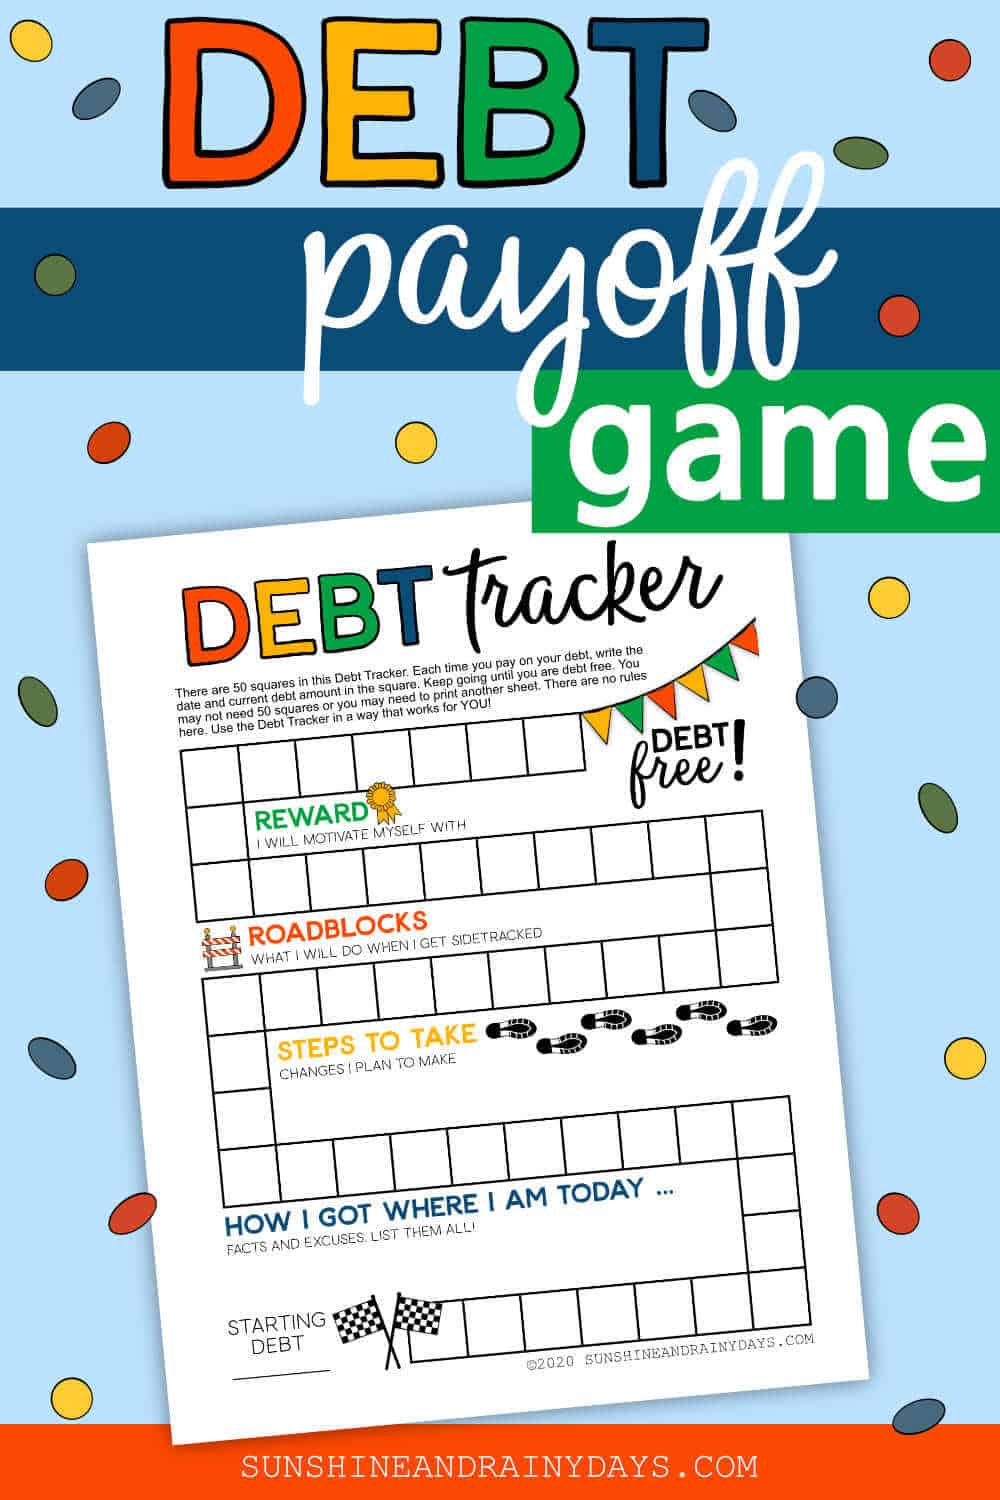 Debt Payoff Printable with the words: Debt Payoff Game